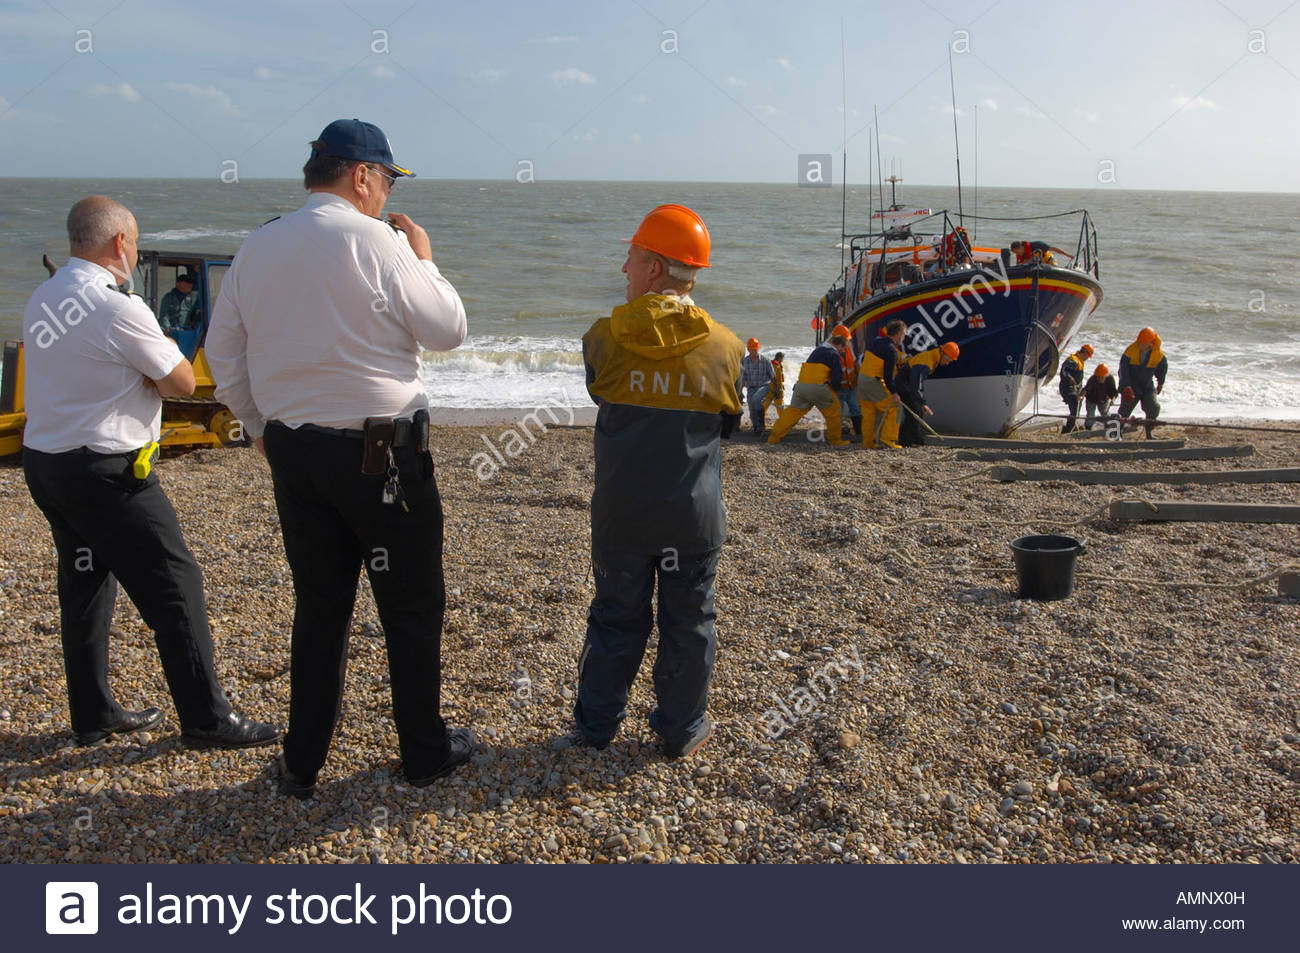 RNLI lifeboat being landed at Aldeburgh, East Anglia. Royal National Lifeboat - Stock Image